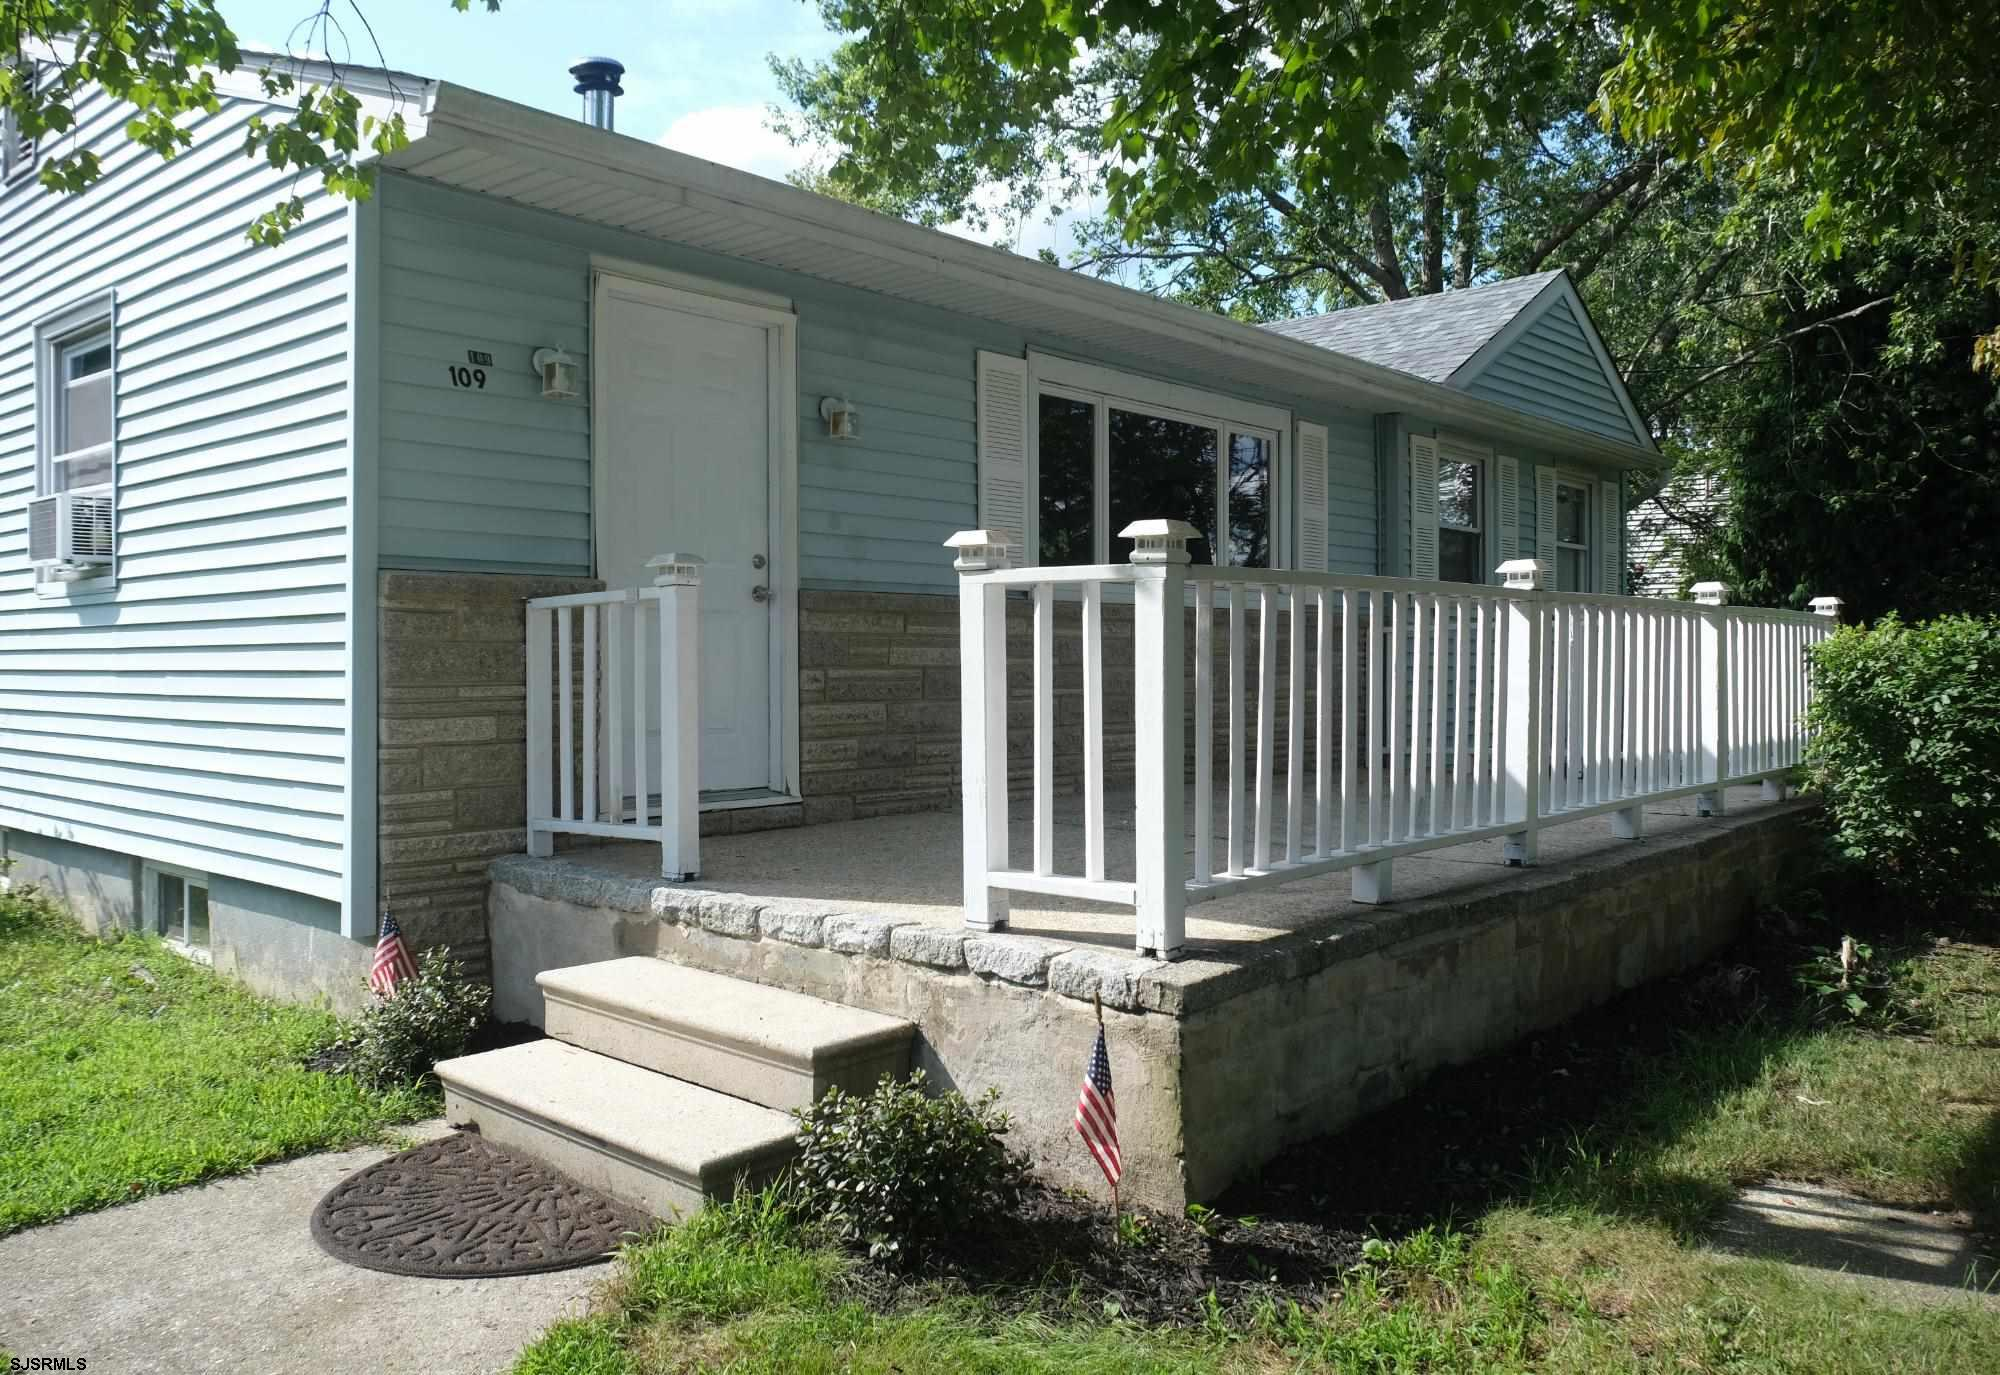 Nice 3 bedroom 1 bath in EHT. Close to shopping, Parkway and Expressway. 15 minutes to AC.  Big priv